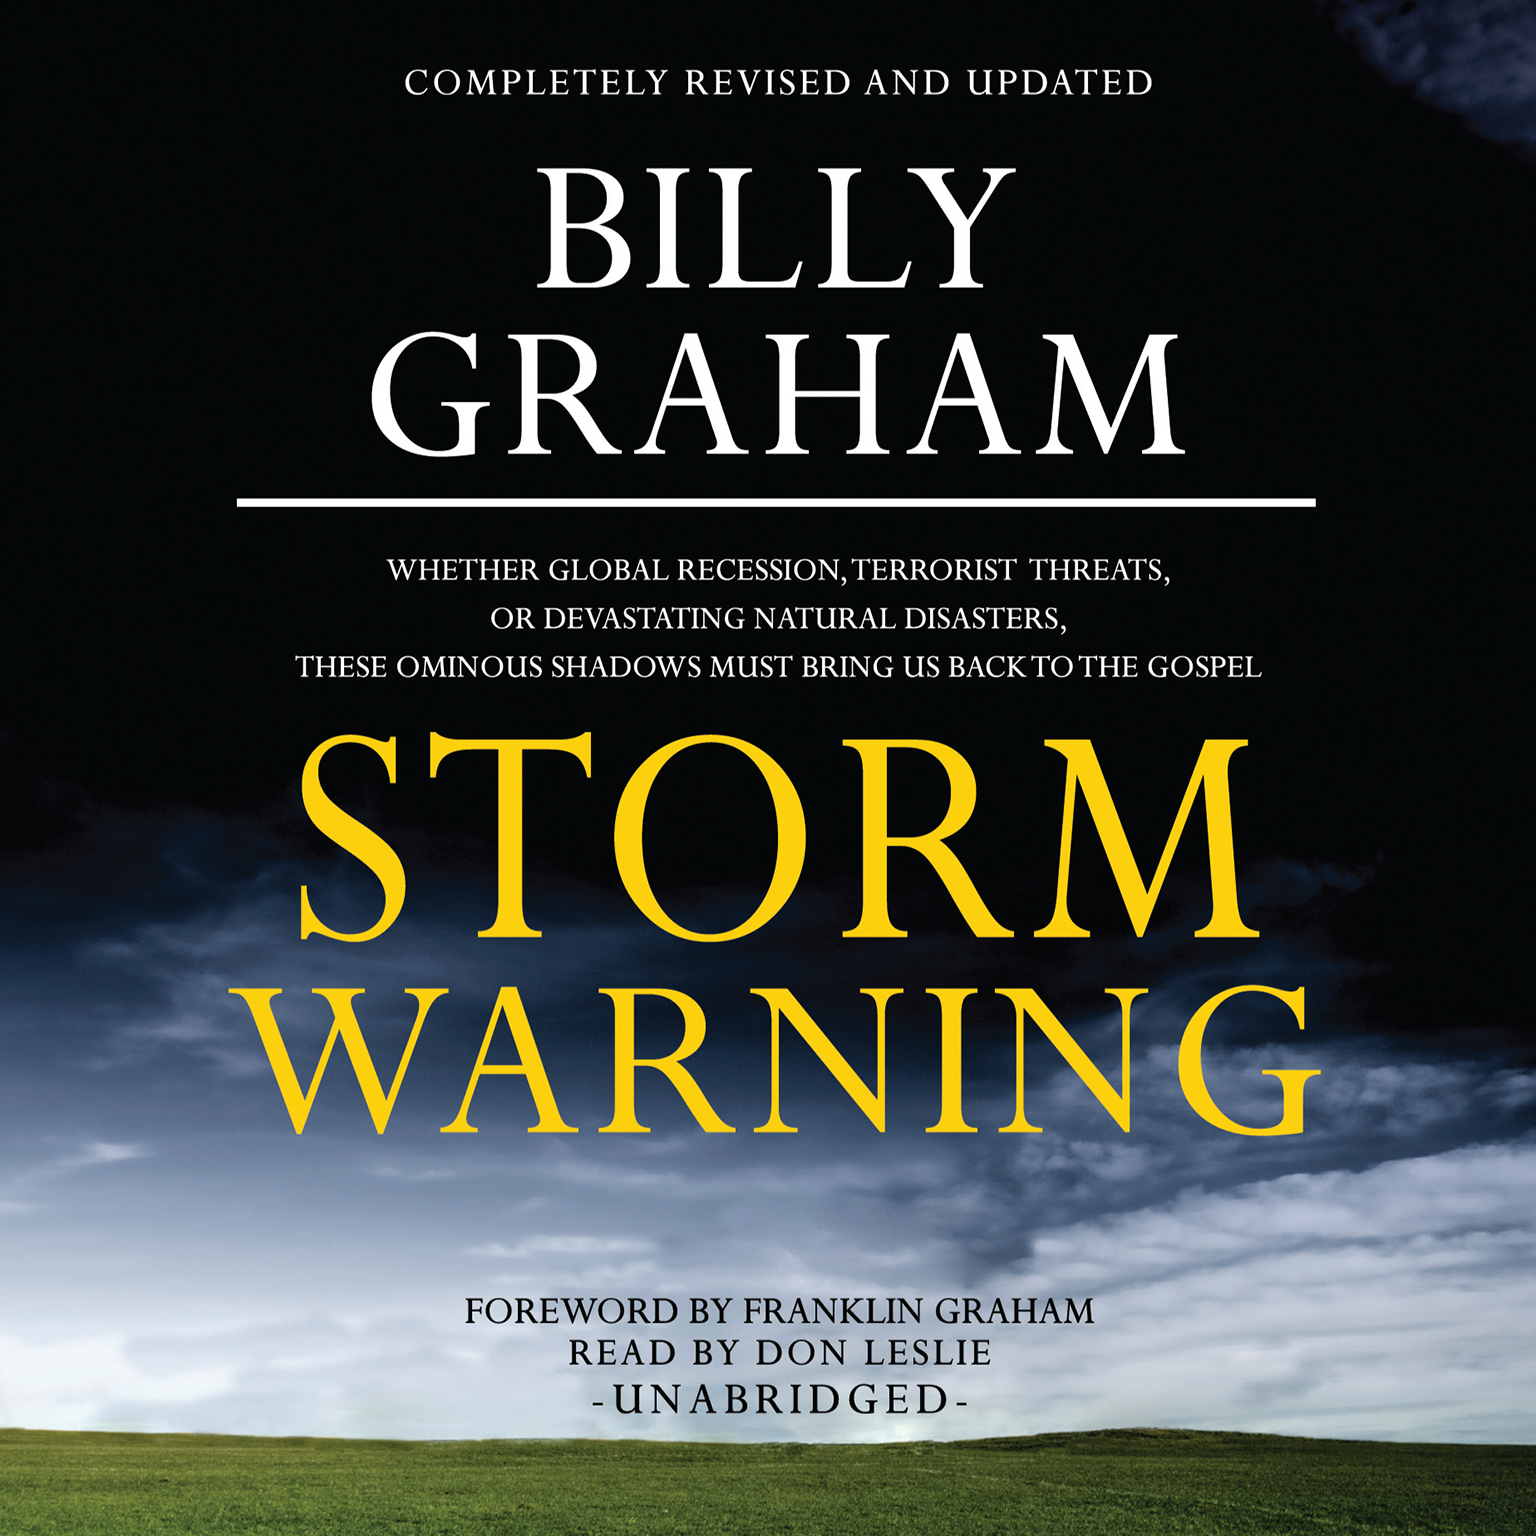 Printable Storm Warning: Whether Global Recession, Terrorist Threats, or Devastating Natural Disasters, These Ominous Shadows Must Bring Us Back to the Gospel Audiobook Cover Art